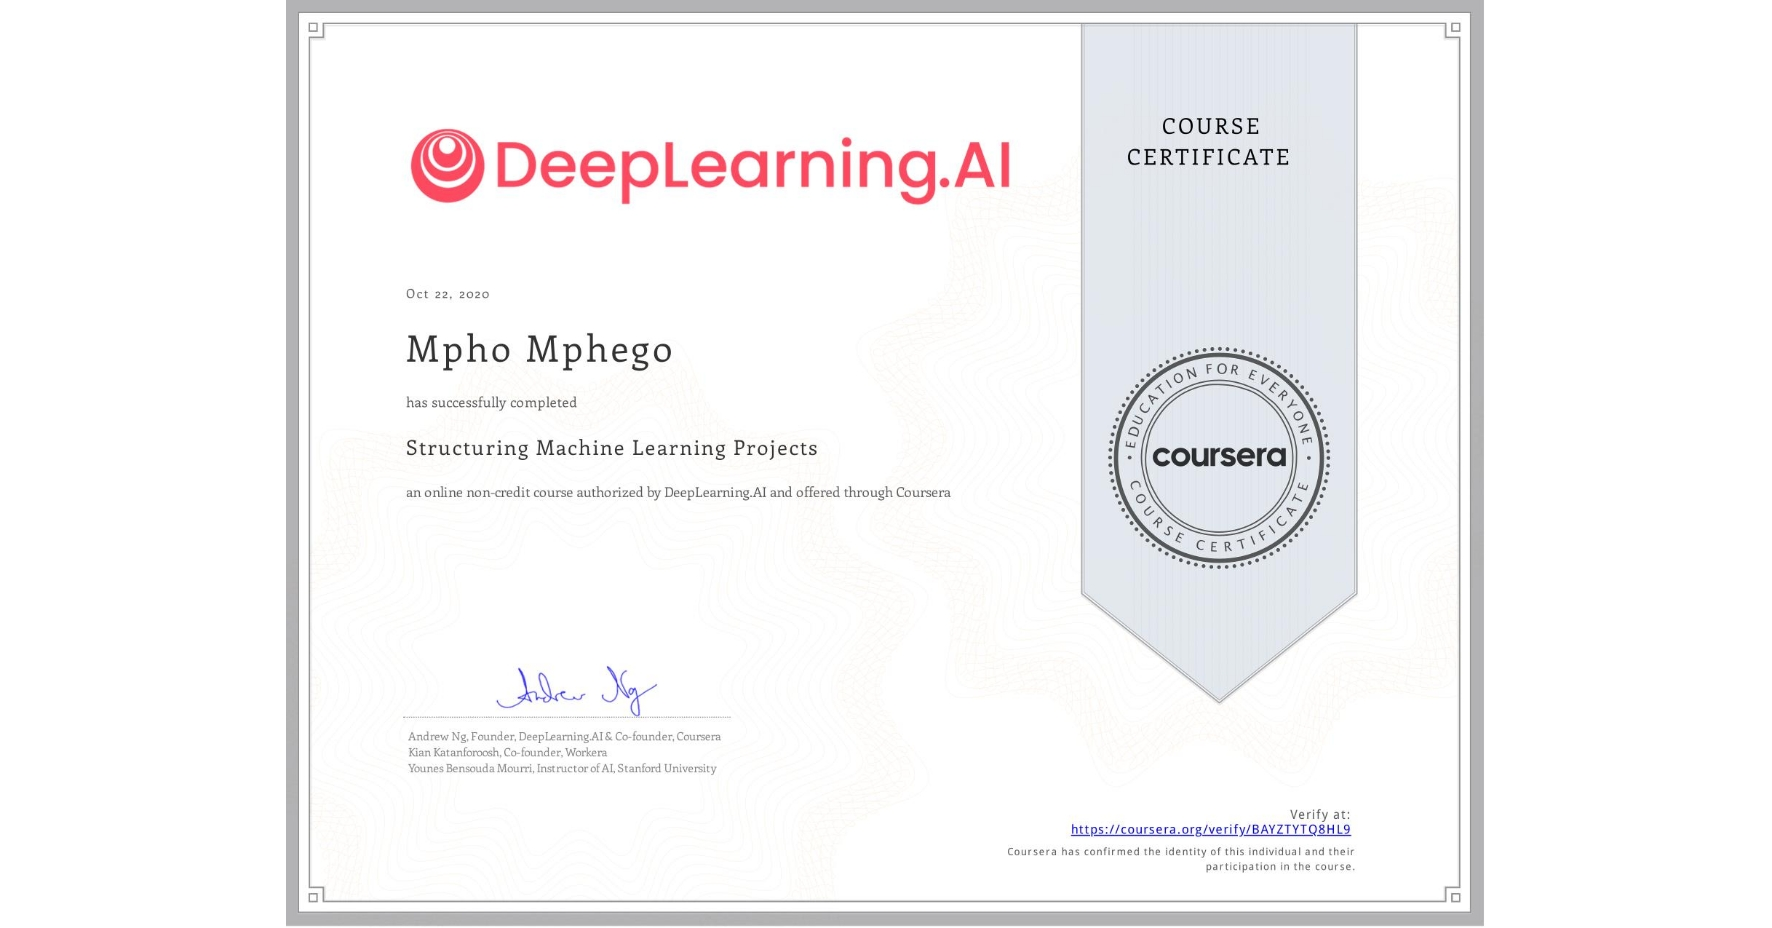 View certificate for Mpho Mphego, Structuring Machine Learning Projects, an online non-credit course authorized by DeepLearning.AI and offered through Coursera